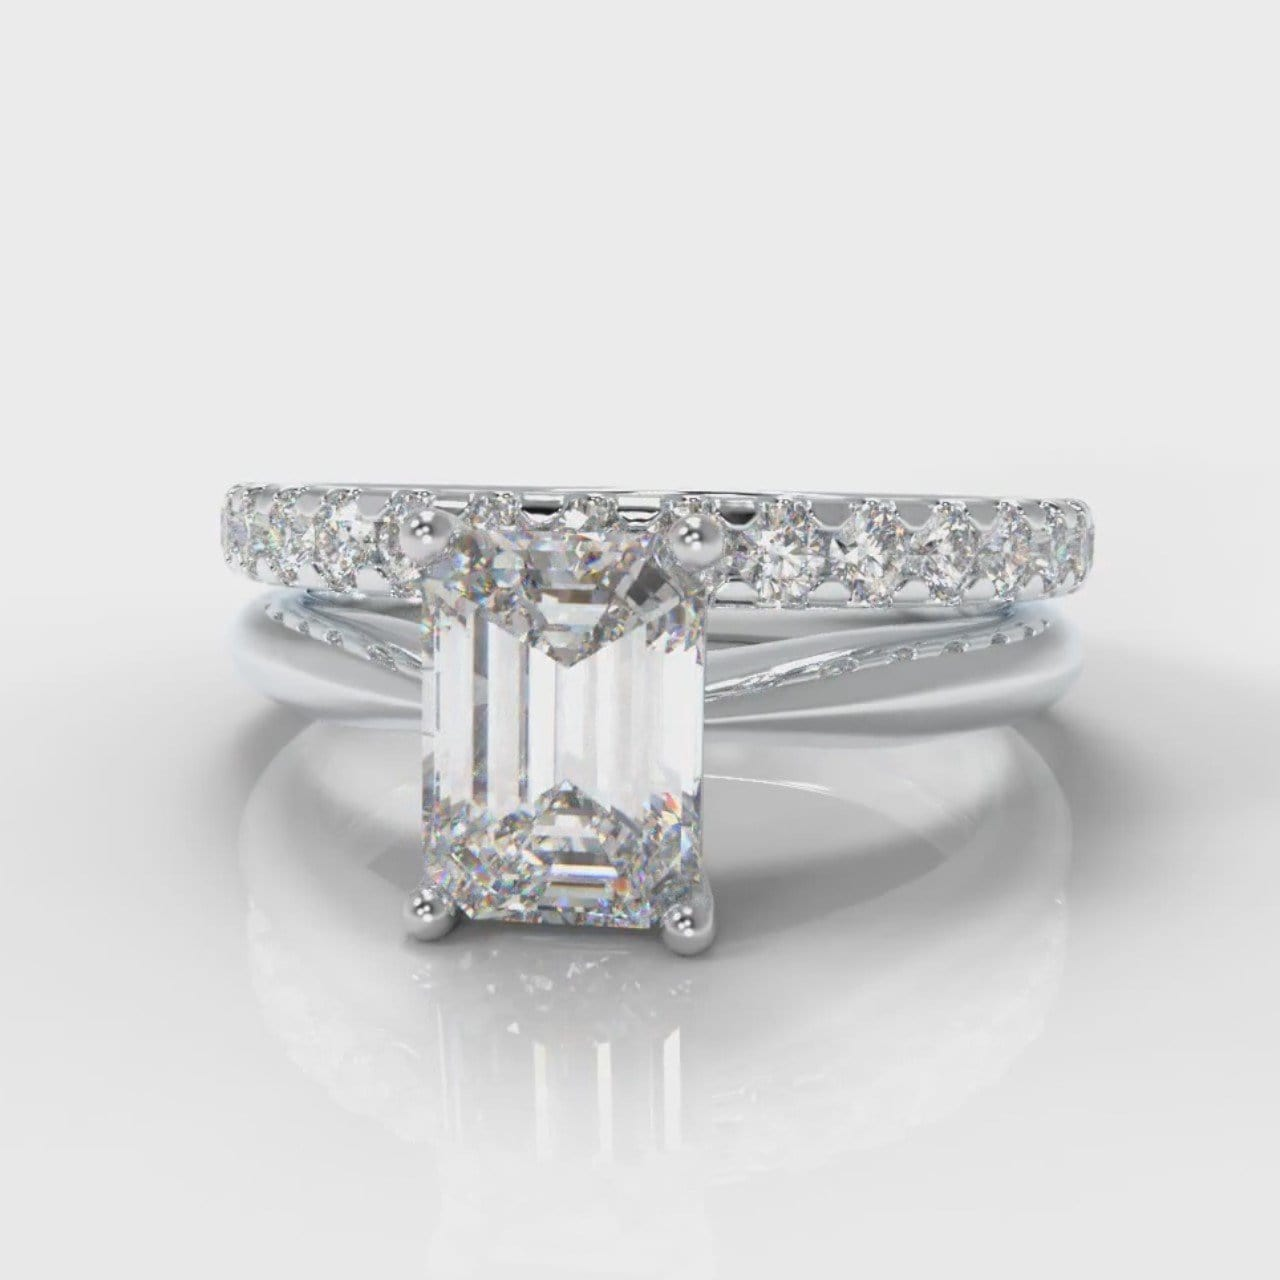 Carrée Solitaire Emerald Cut Diamond Bridal Set